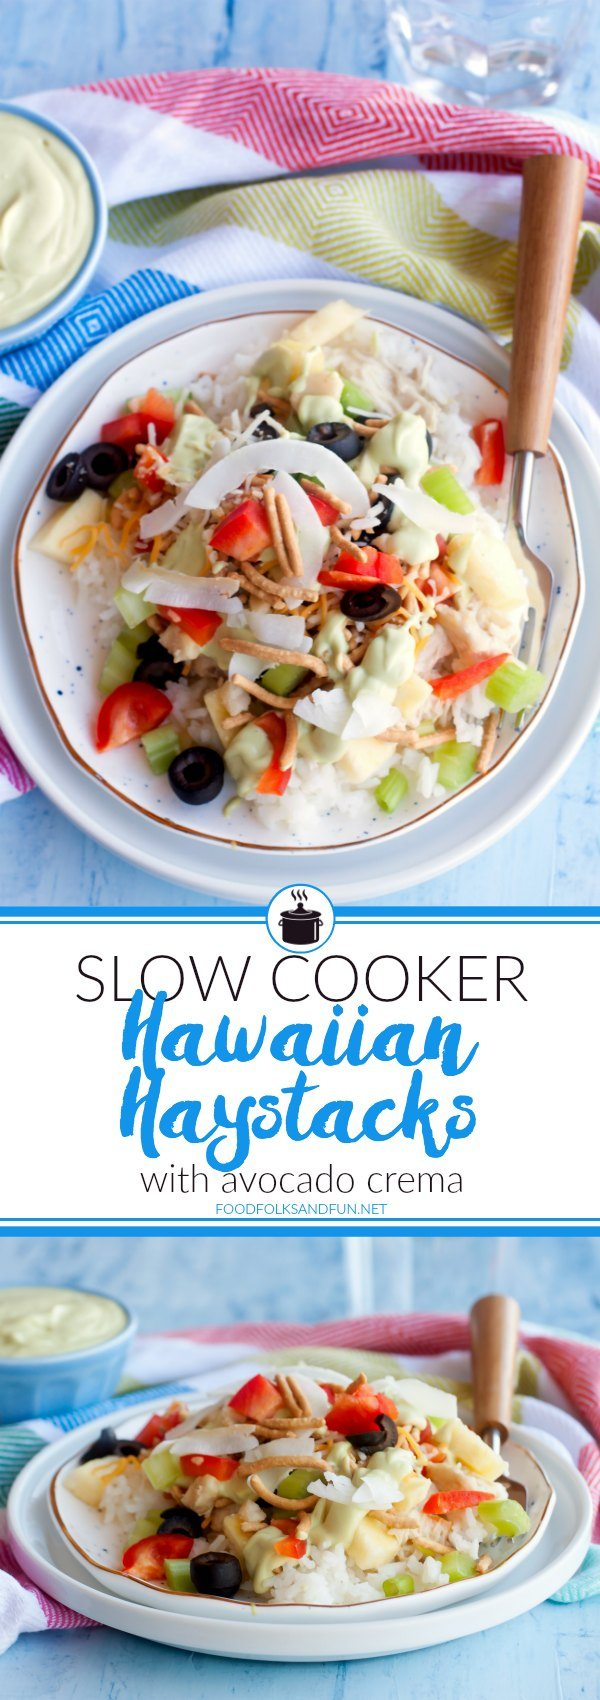 These easy Slow Cooker Hawaiian Haystacks with Avocado Crema are a family favorite for weeknight dinners. They're perfect for picky eaters because each haystack is completely customizable!